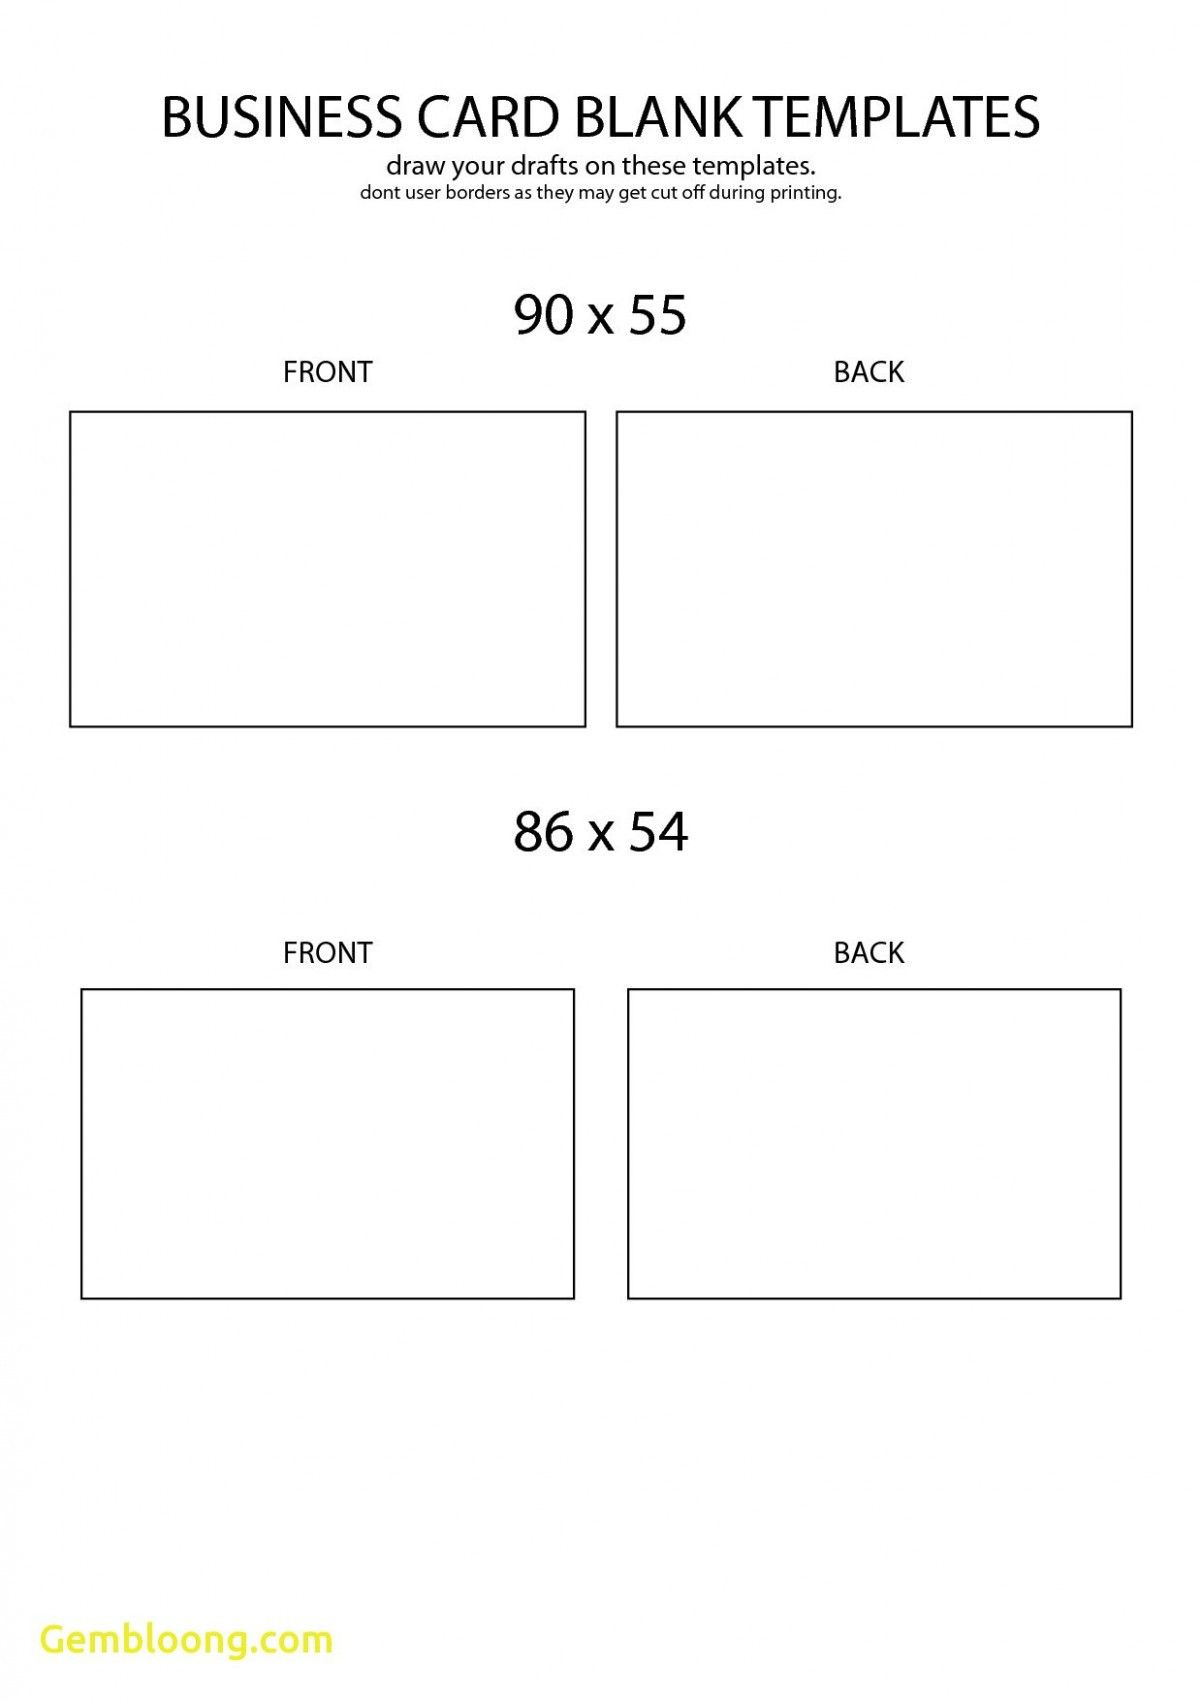 free blank business card template front and back design